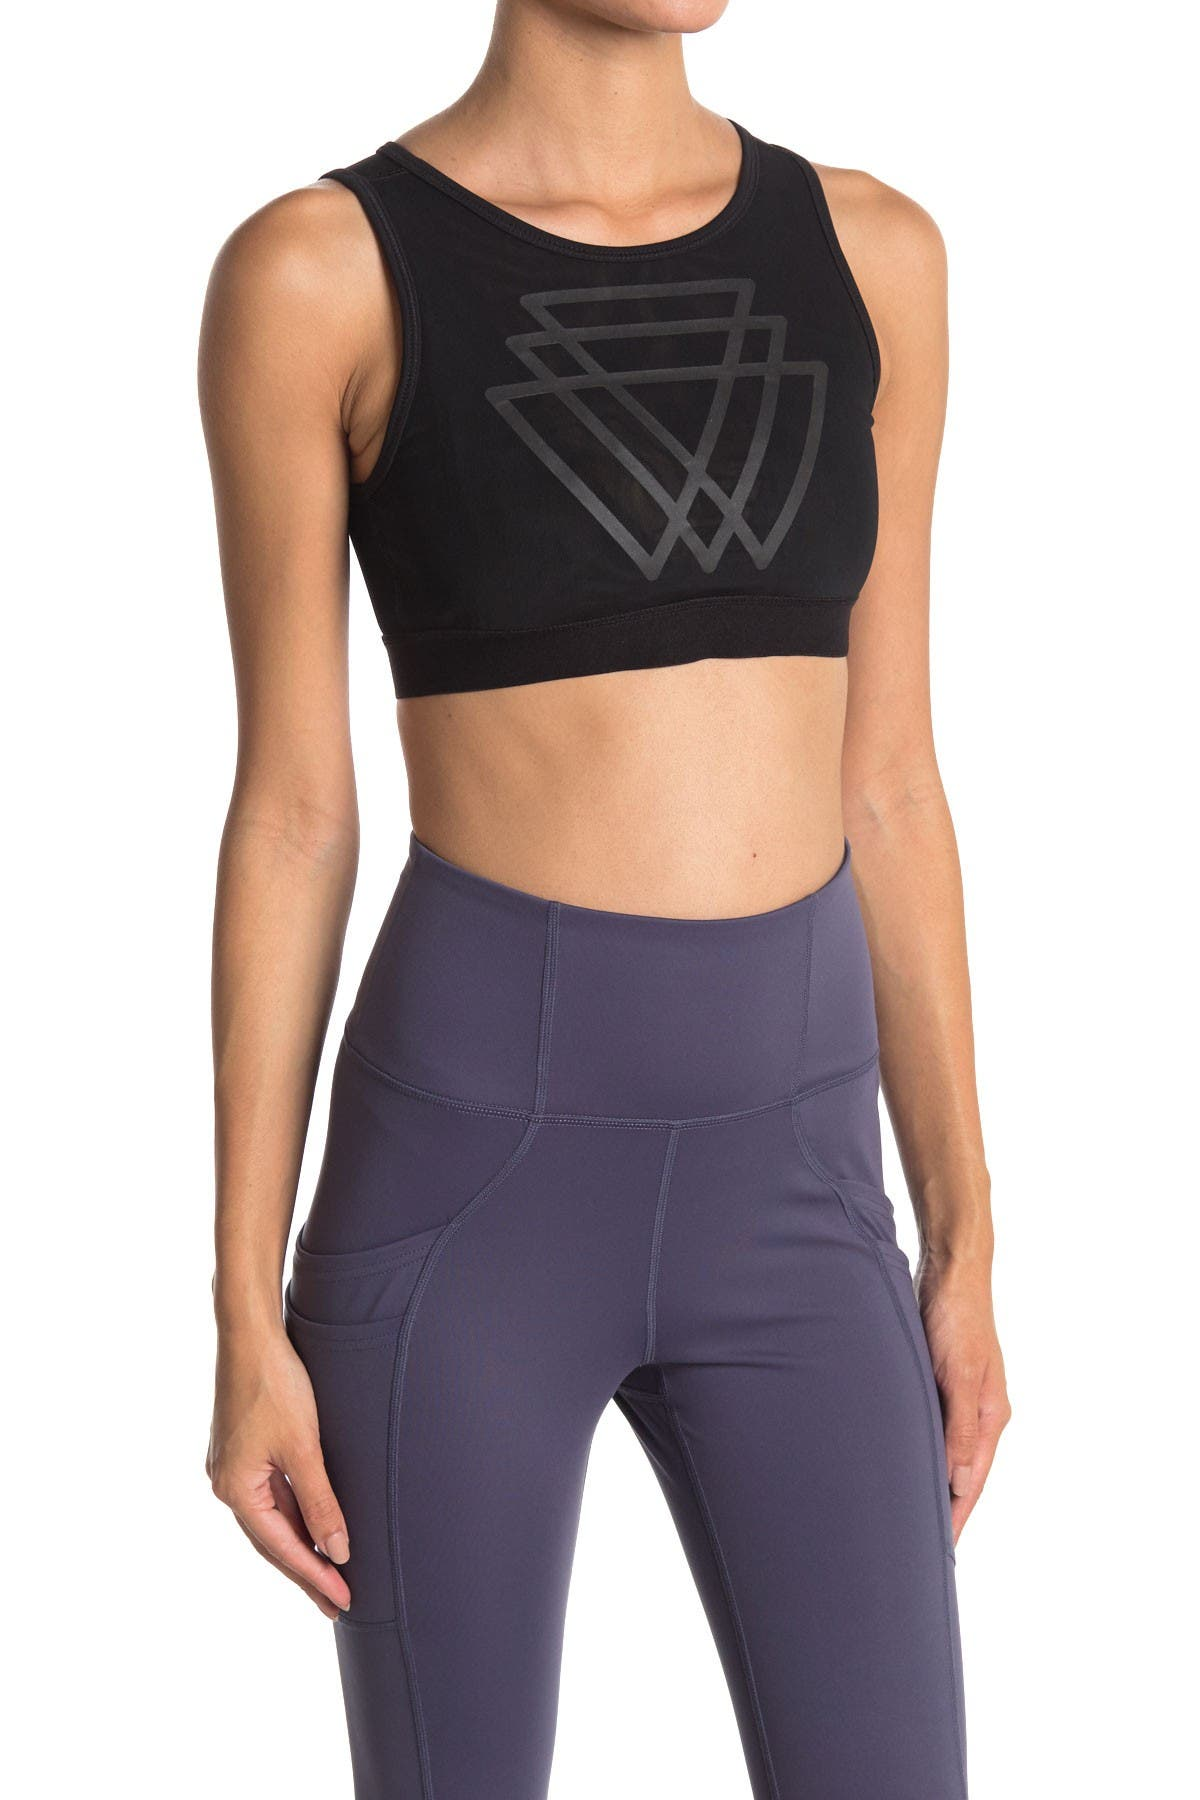 Image of 90 Degree By Reflex Interlocking Triangles Crop Top